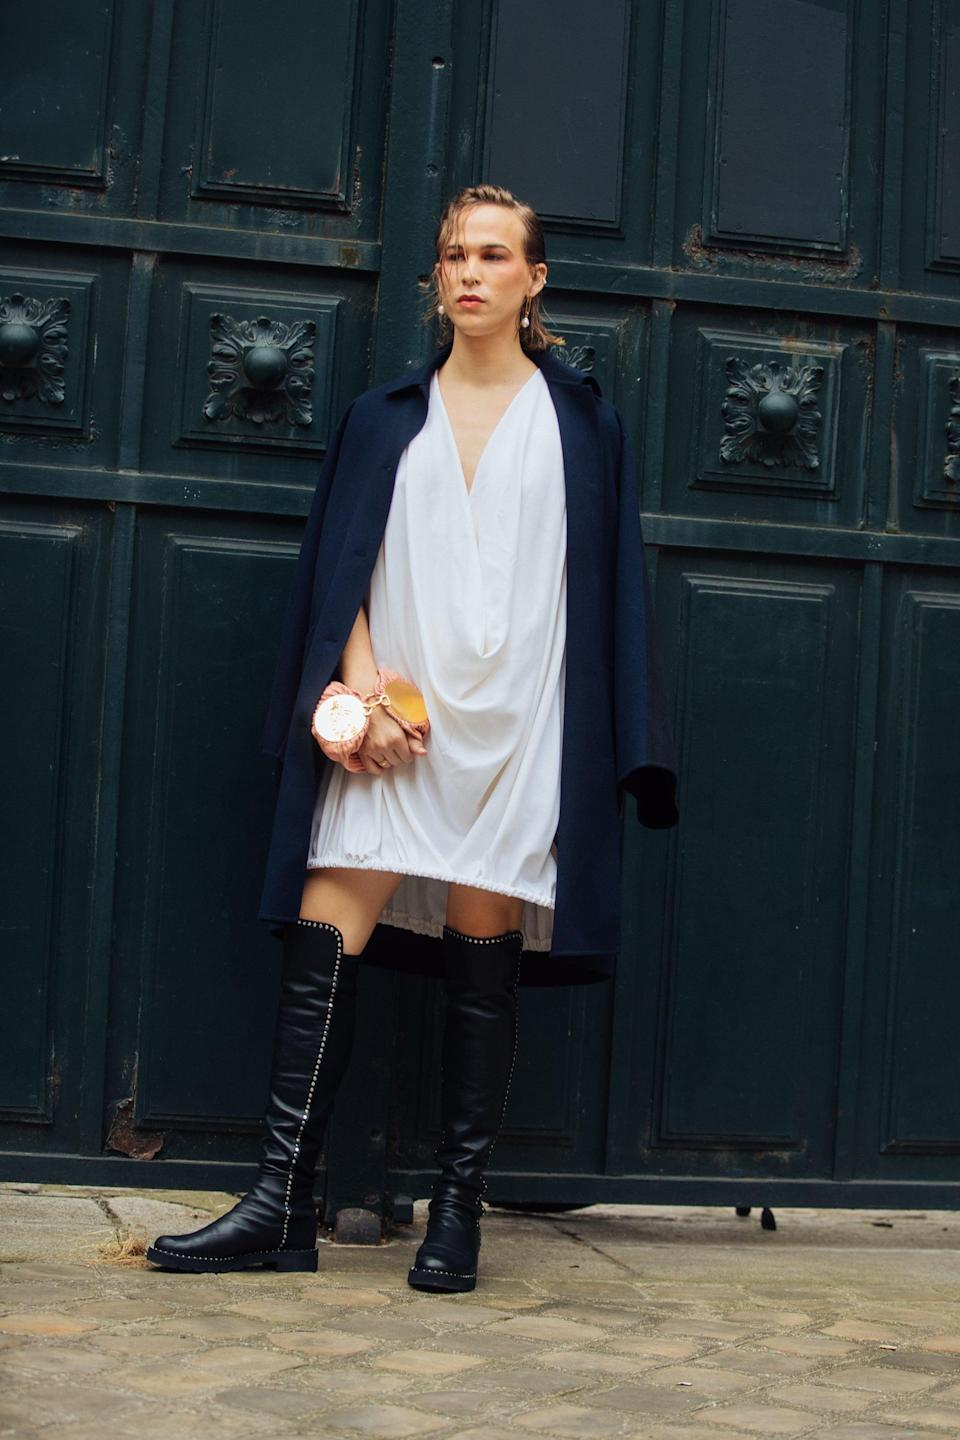 <p>She styled a billowing white dress with a pink bag, Stuart Weitzman knee-high boots, and a long coat.</p>